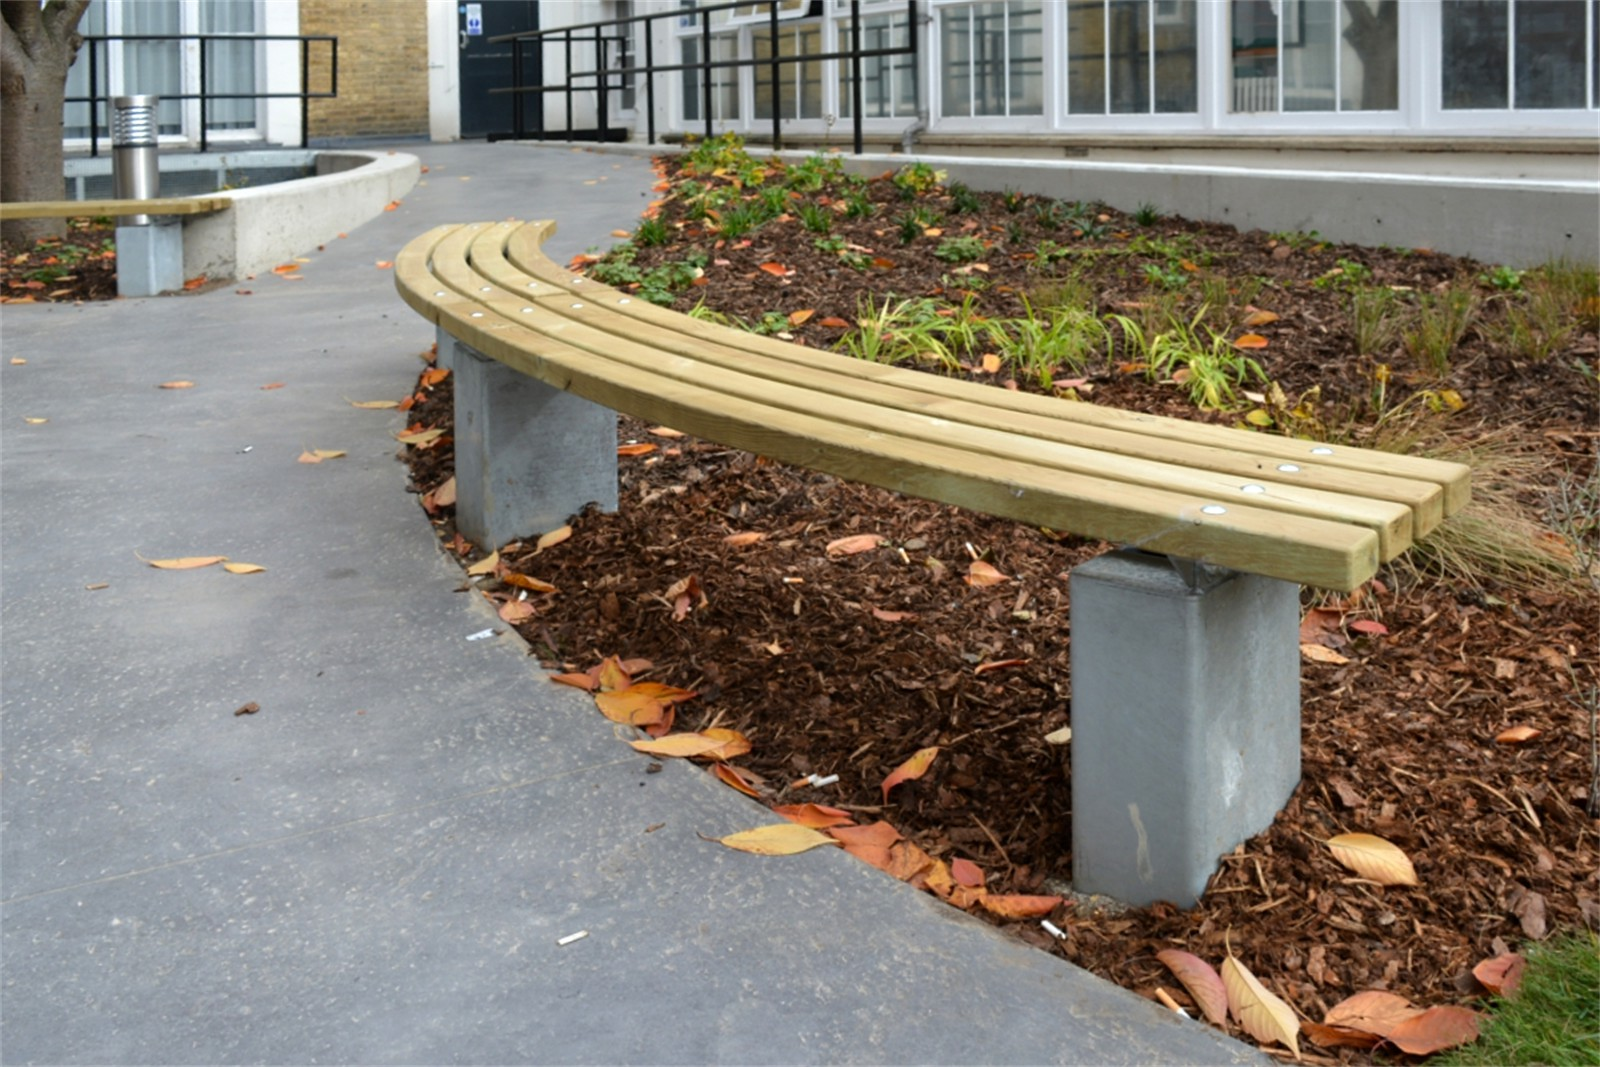 60sbe15 - Bexley curved bench